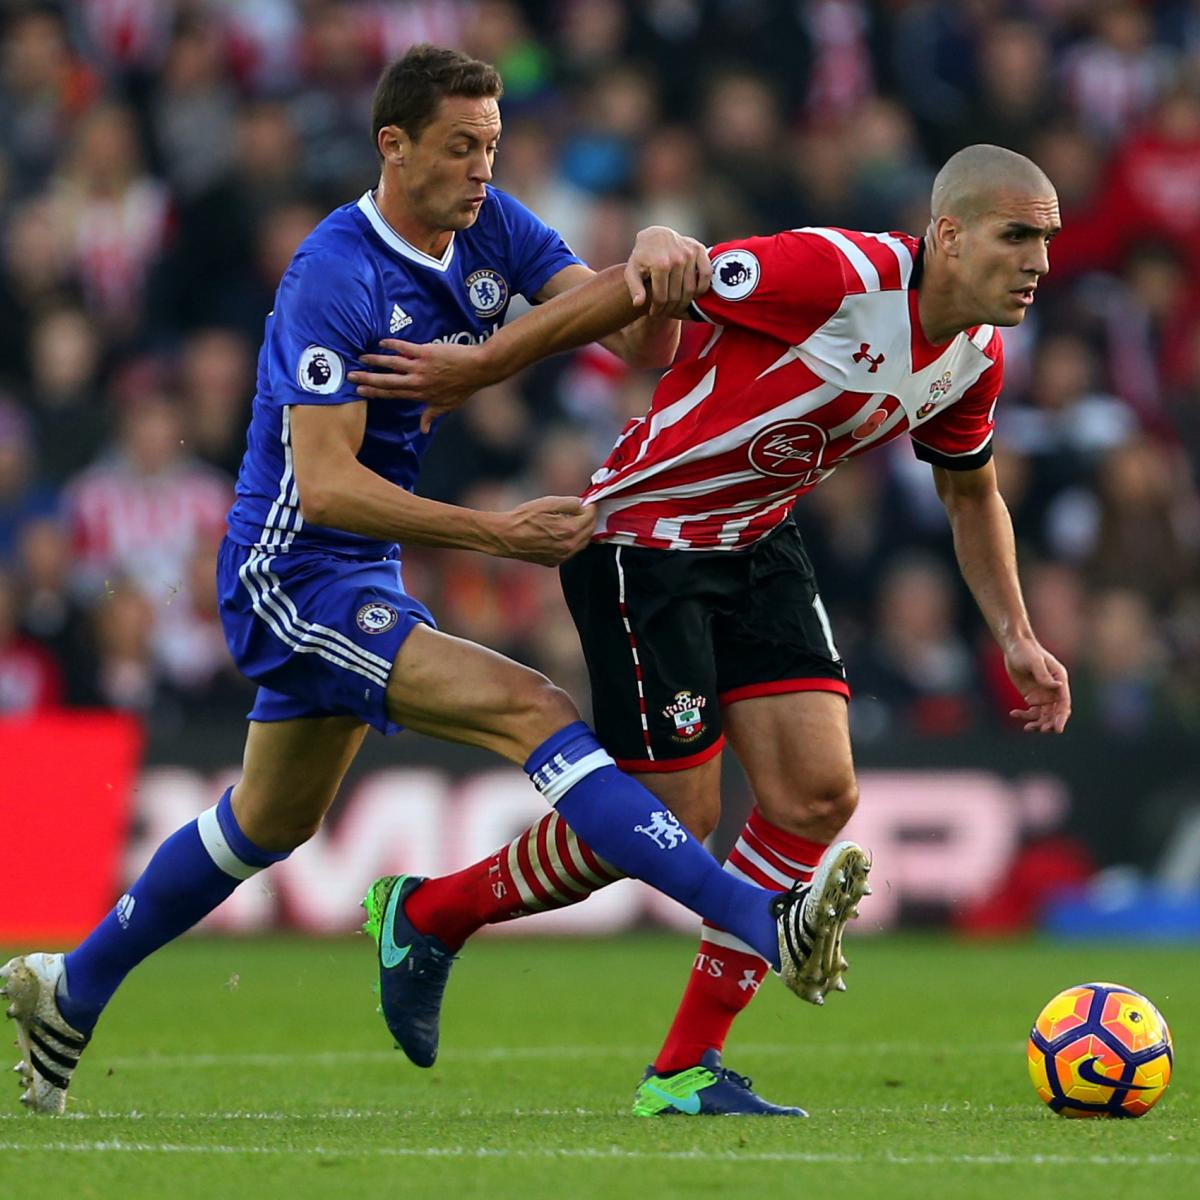 Psg Vs Chelsea Live Score Highlights From Champions: Southampton Vs. Chelsea: Live Score, Highlights From